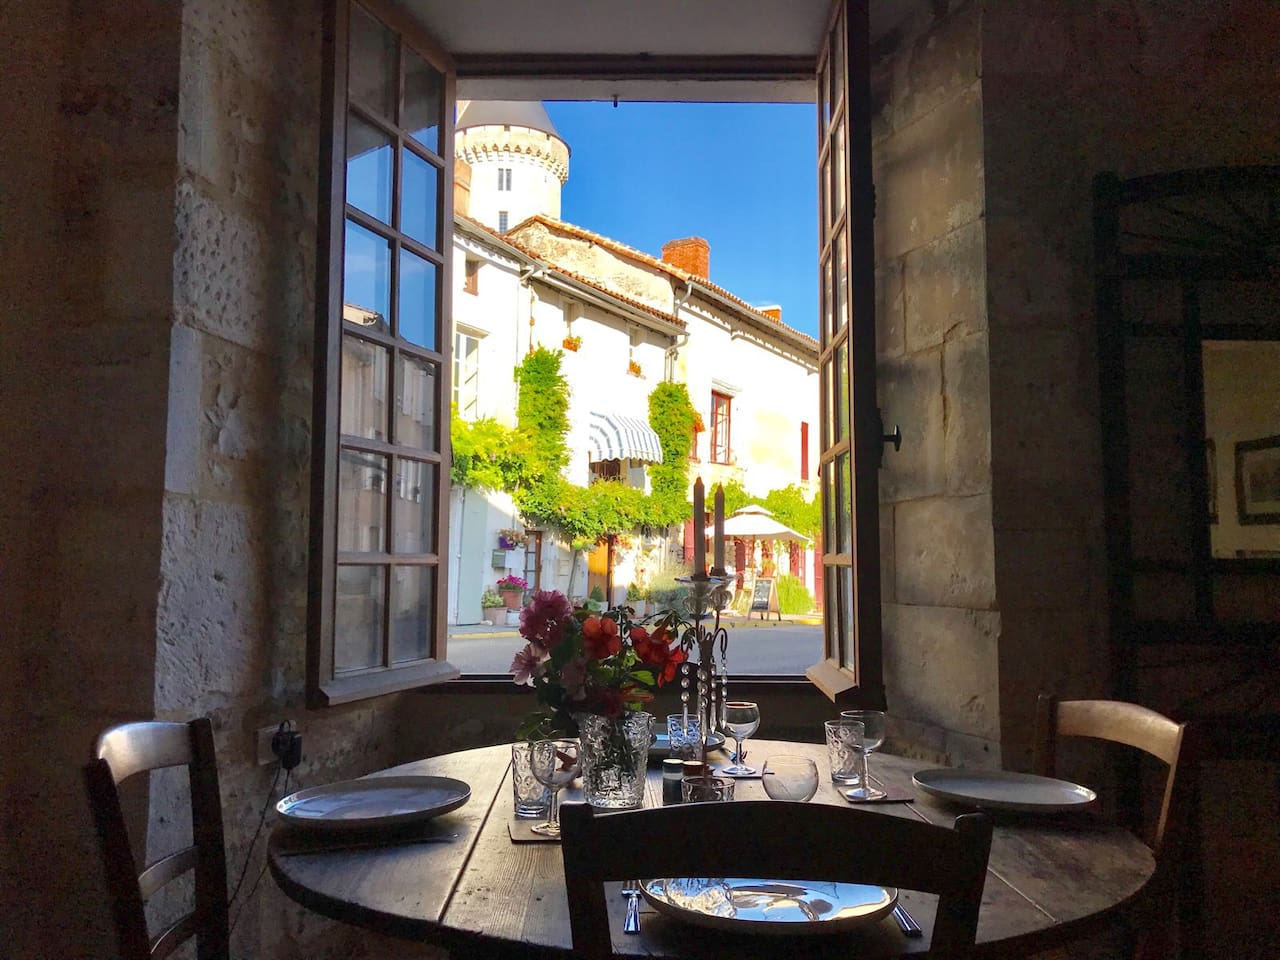 Dine in the shadows of the Château, with your own amazing view!